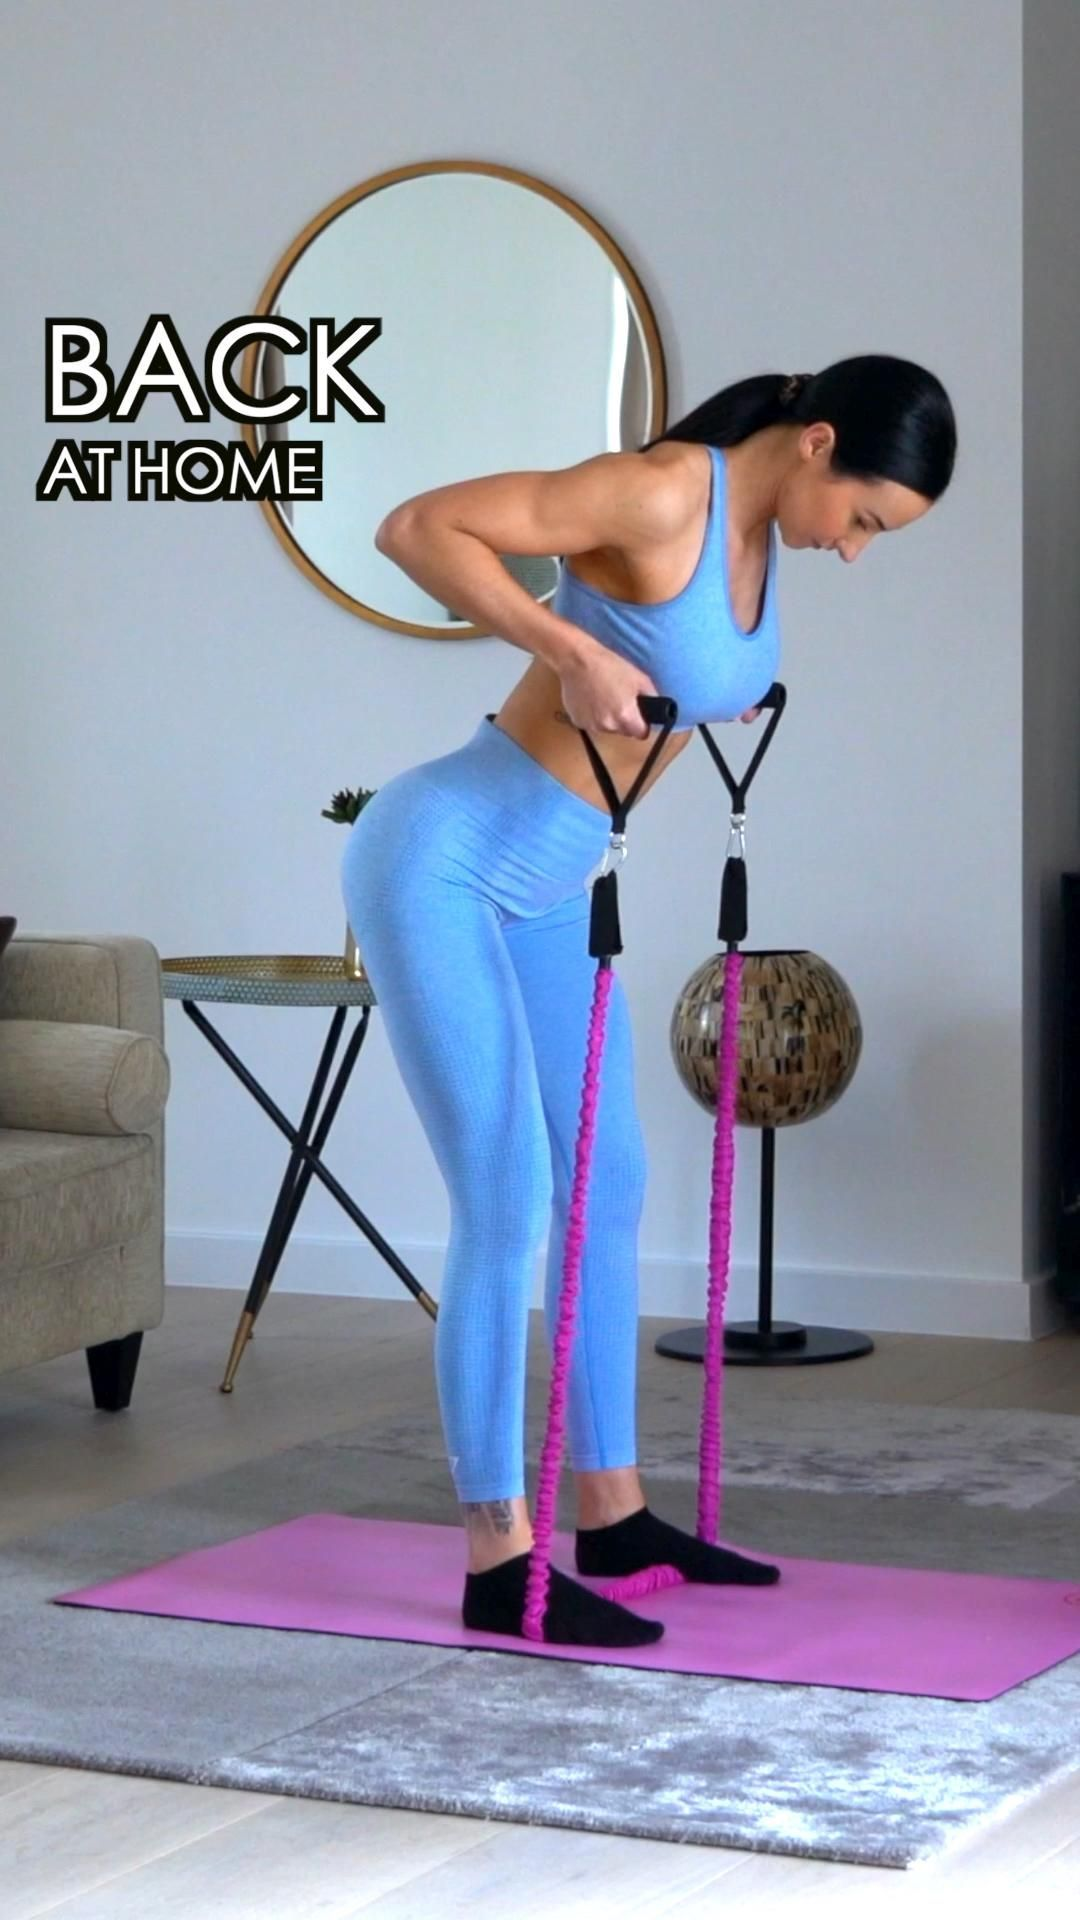 Back Workout At Home from the Strong&Sxy app